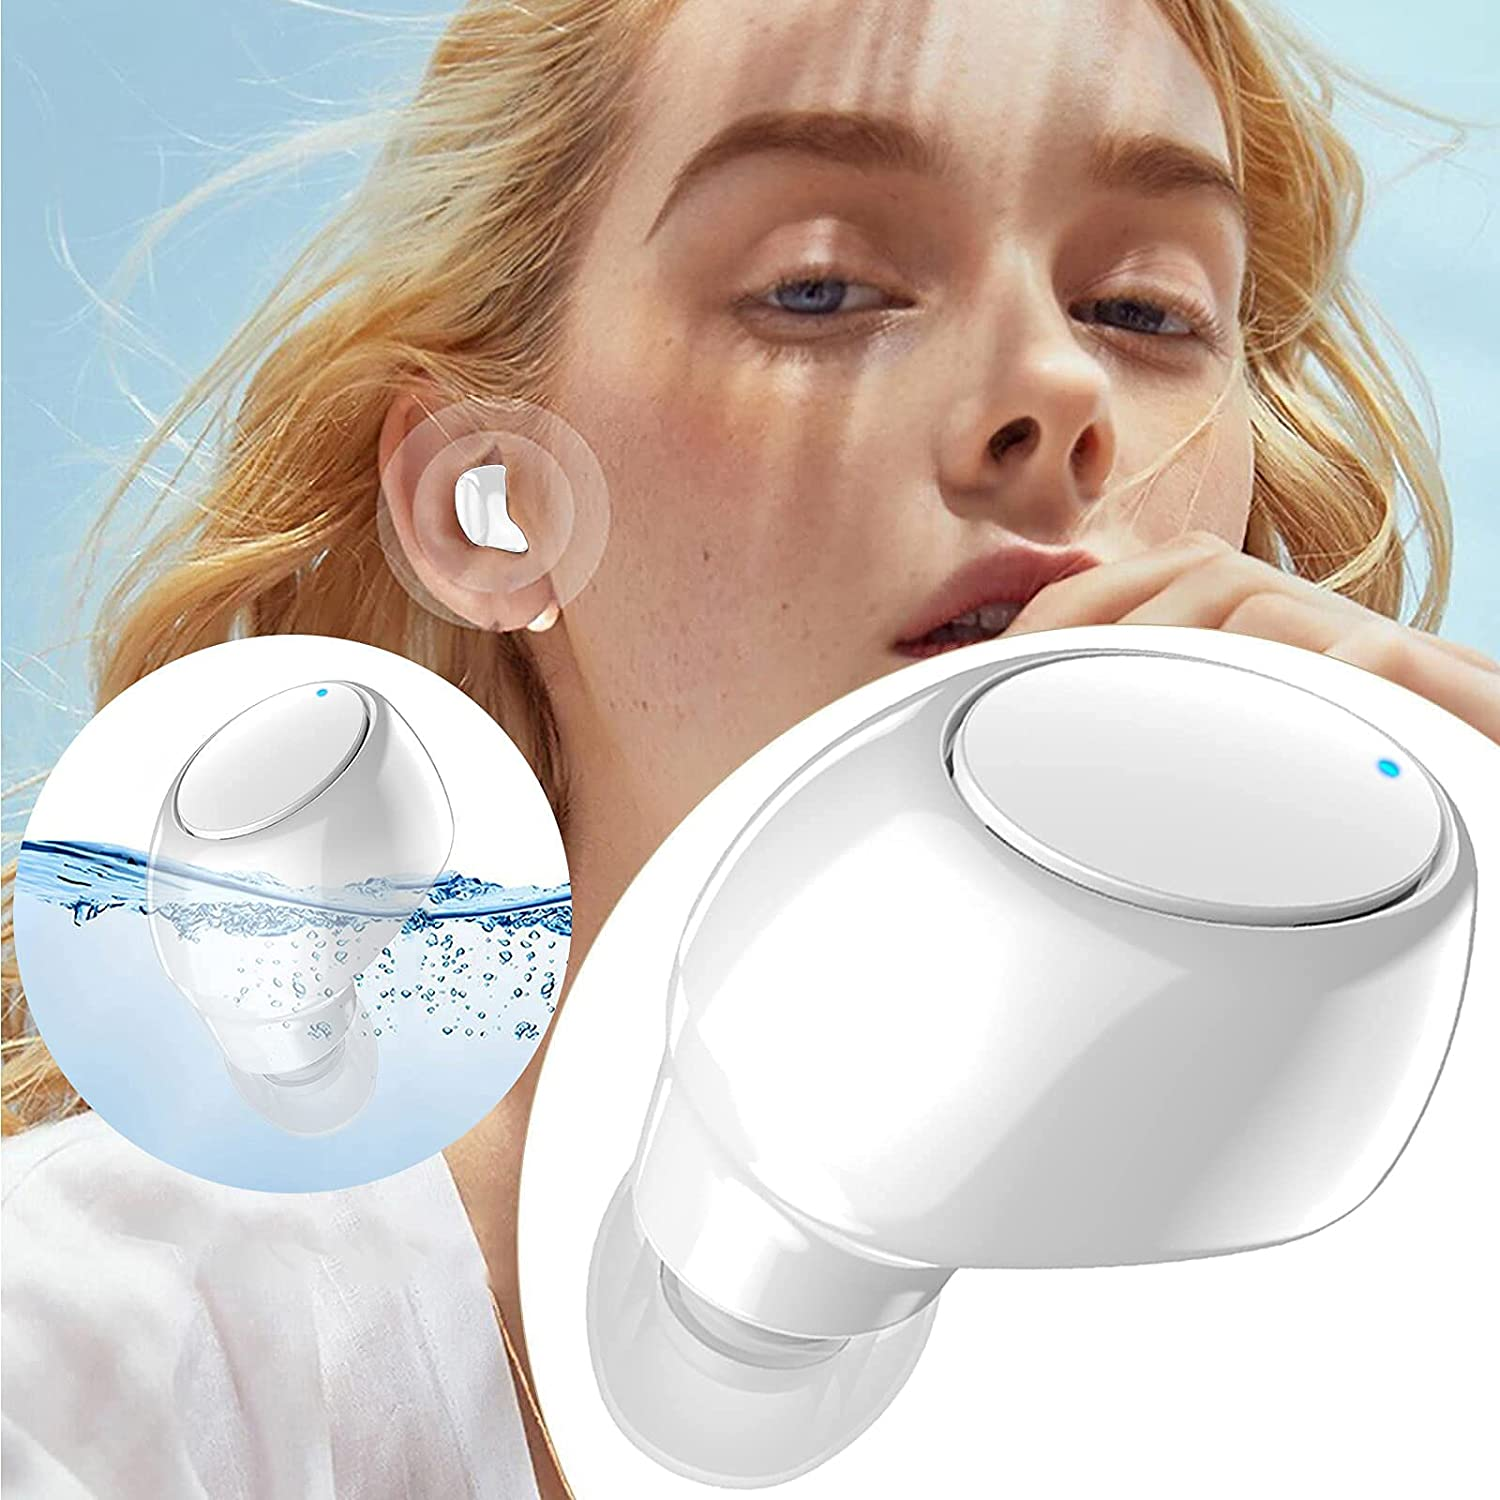 1 PC Bluetooth Headphones, Wireless BT Earphones, in-Ear Mini Sports Workout Headset, IPX5 Waterproof Protection, Long Playtime, HiFi Sound Qualit, Compatible with Various Devices (White)